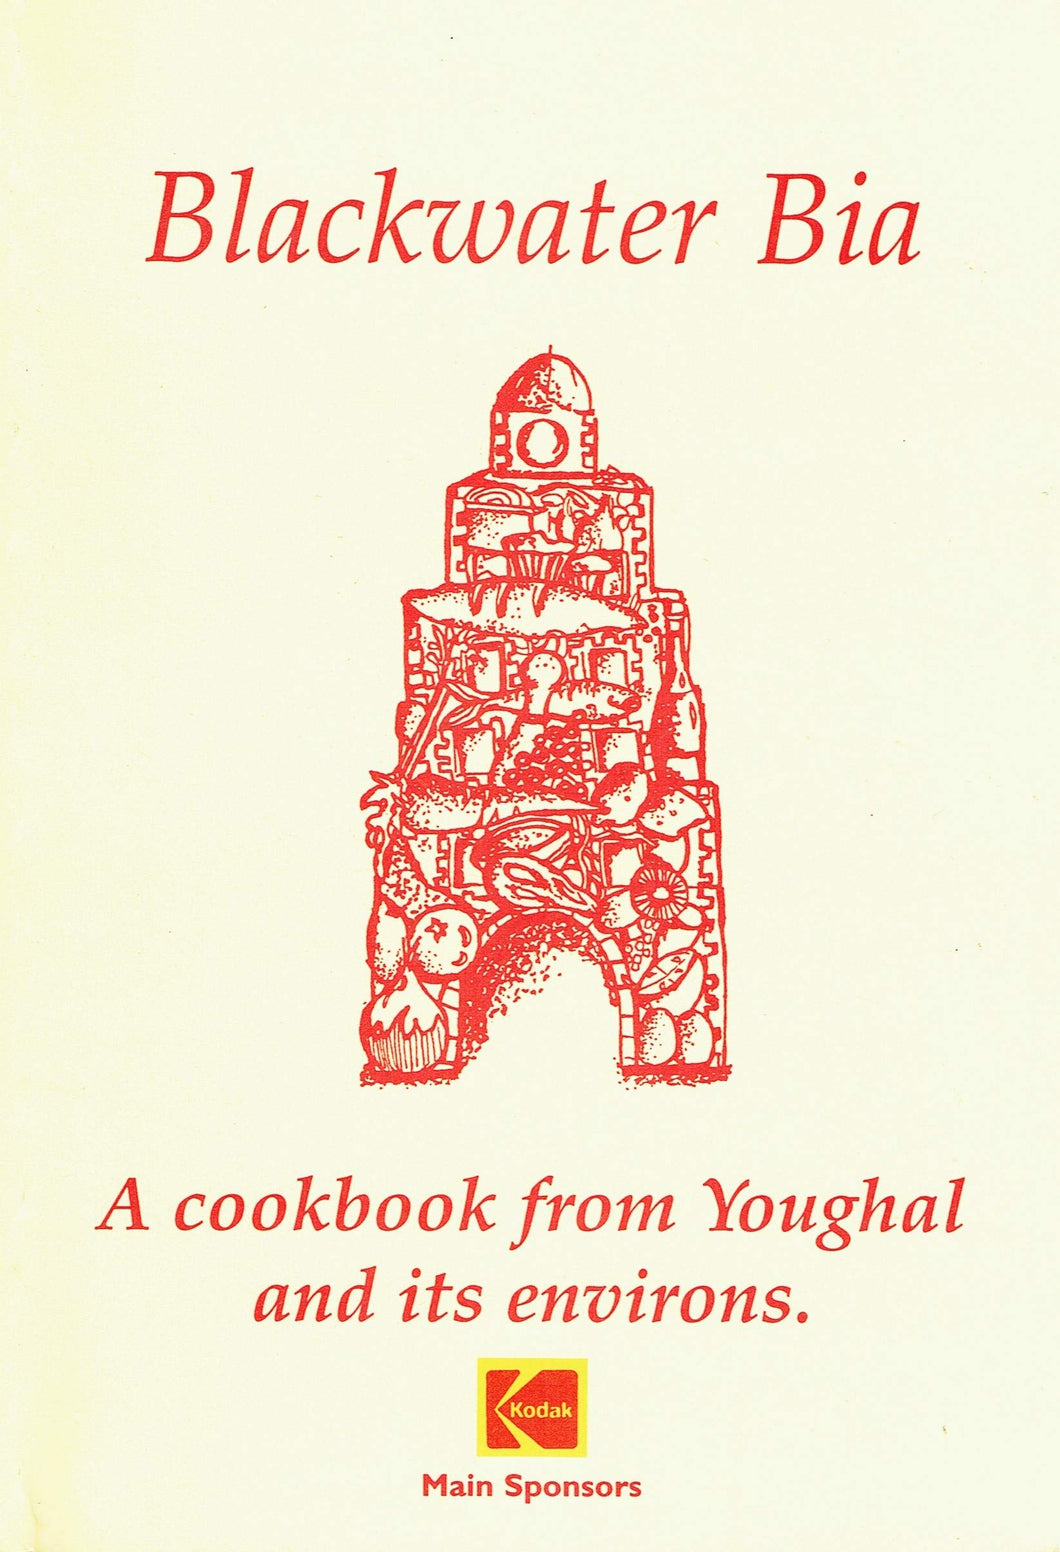 Blackwater Bia: A Cookbook from Youghal and its Environments